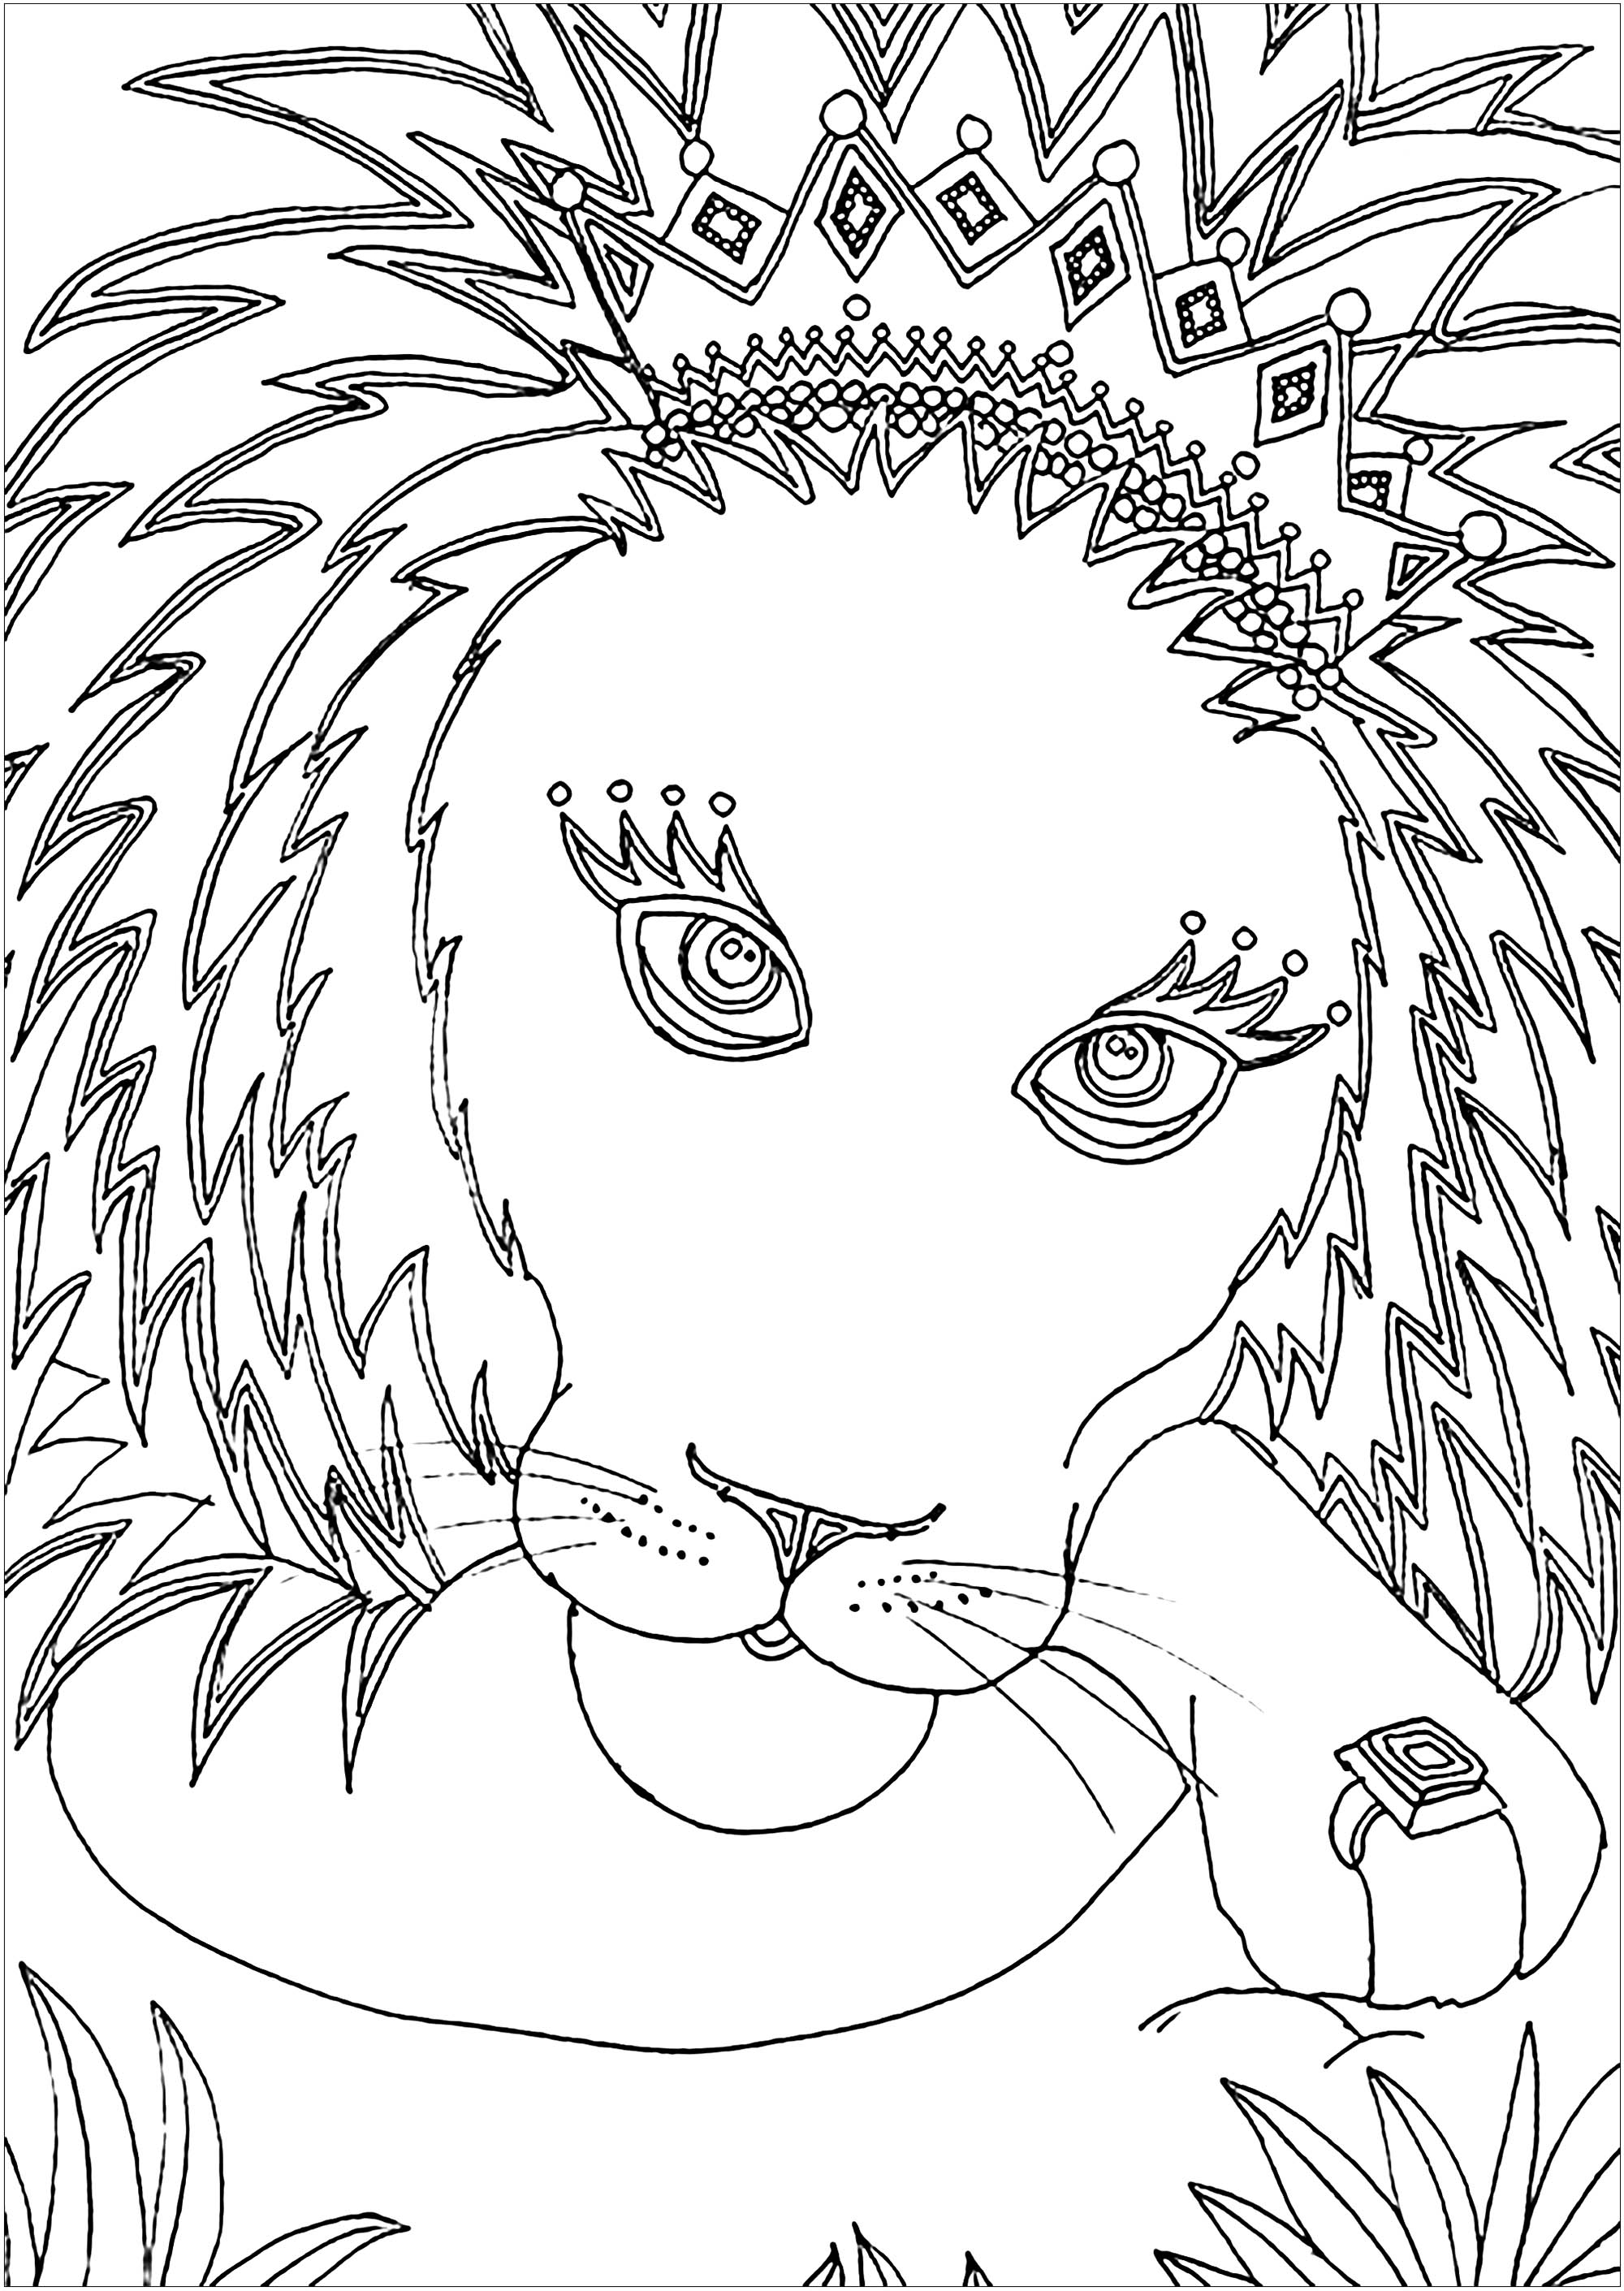 coloring page of a lion lion to color for children lion kids coloring pages page lion a of coloring